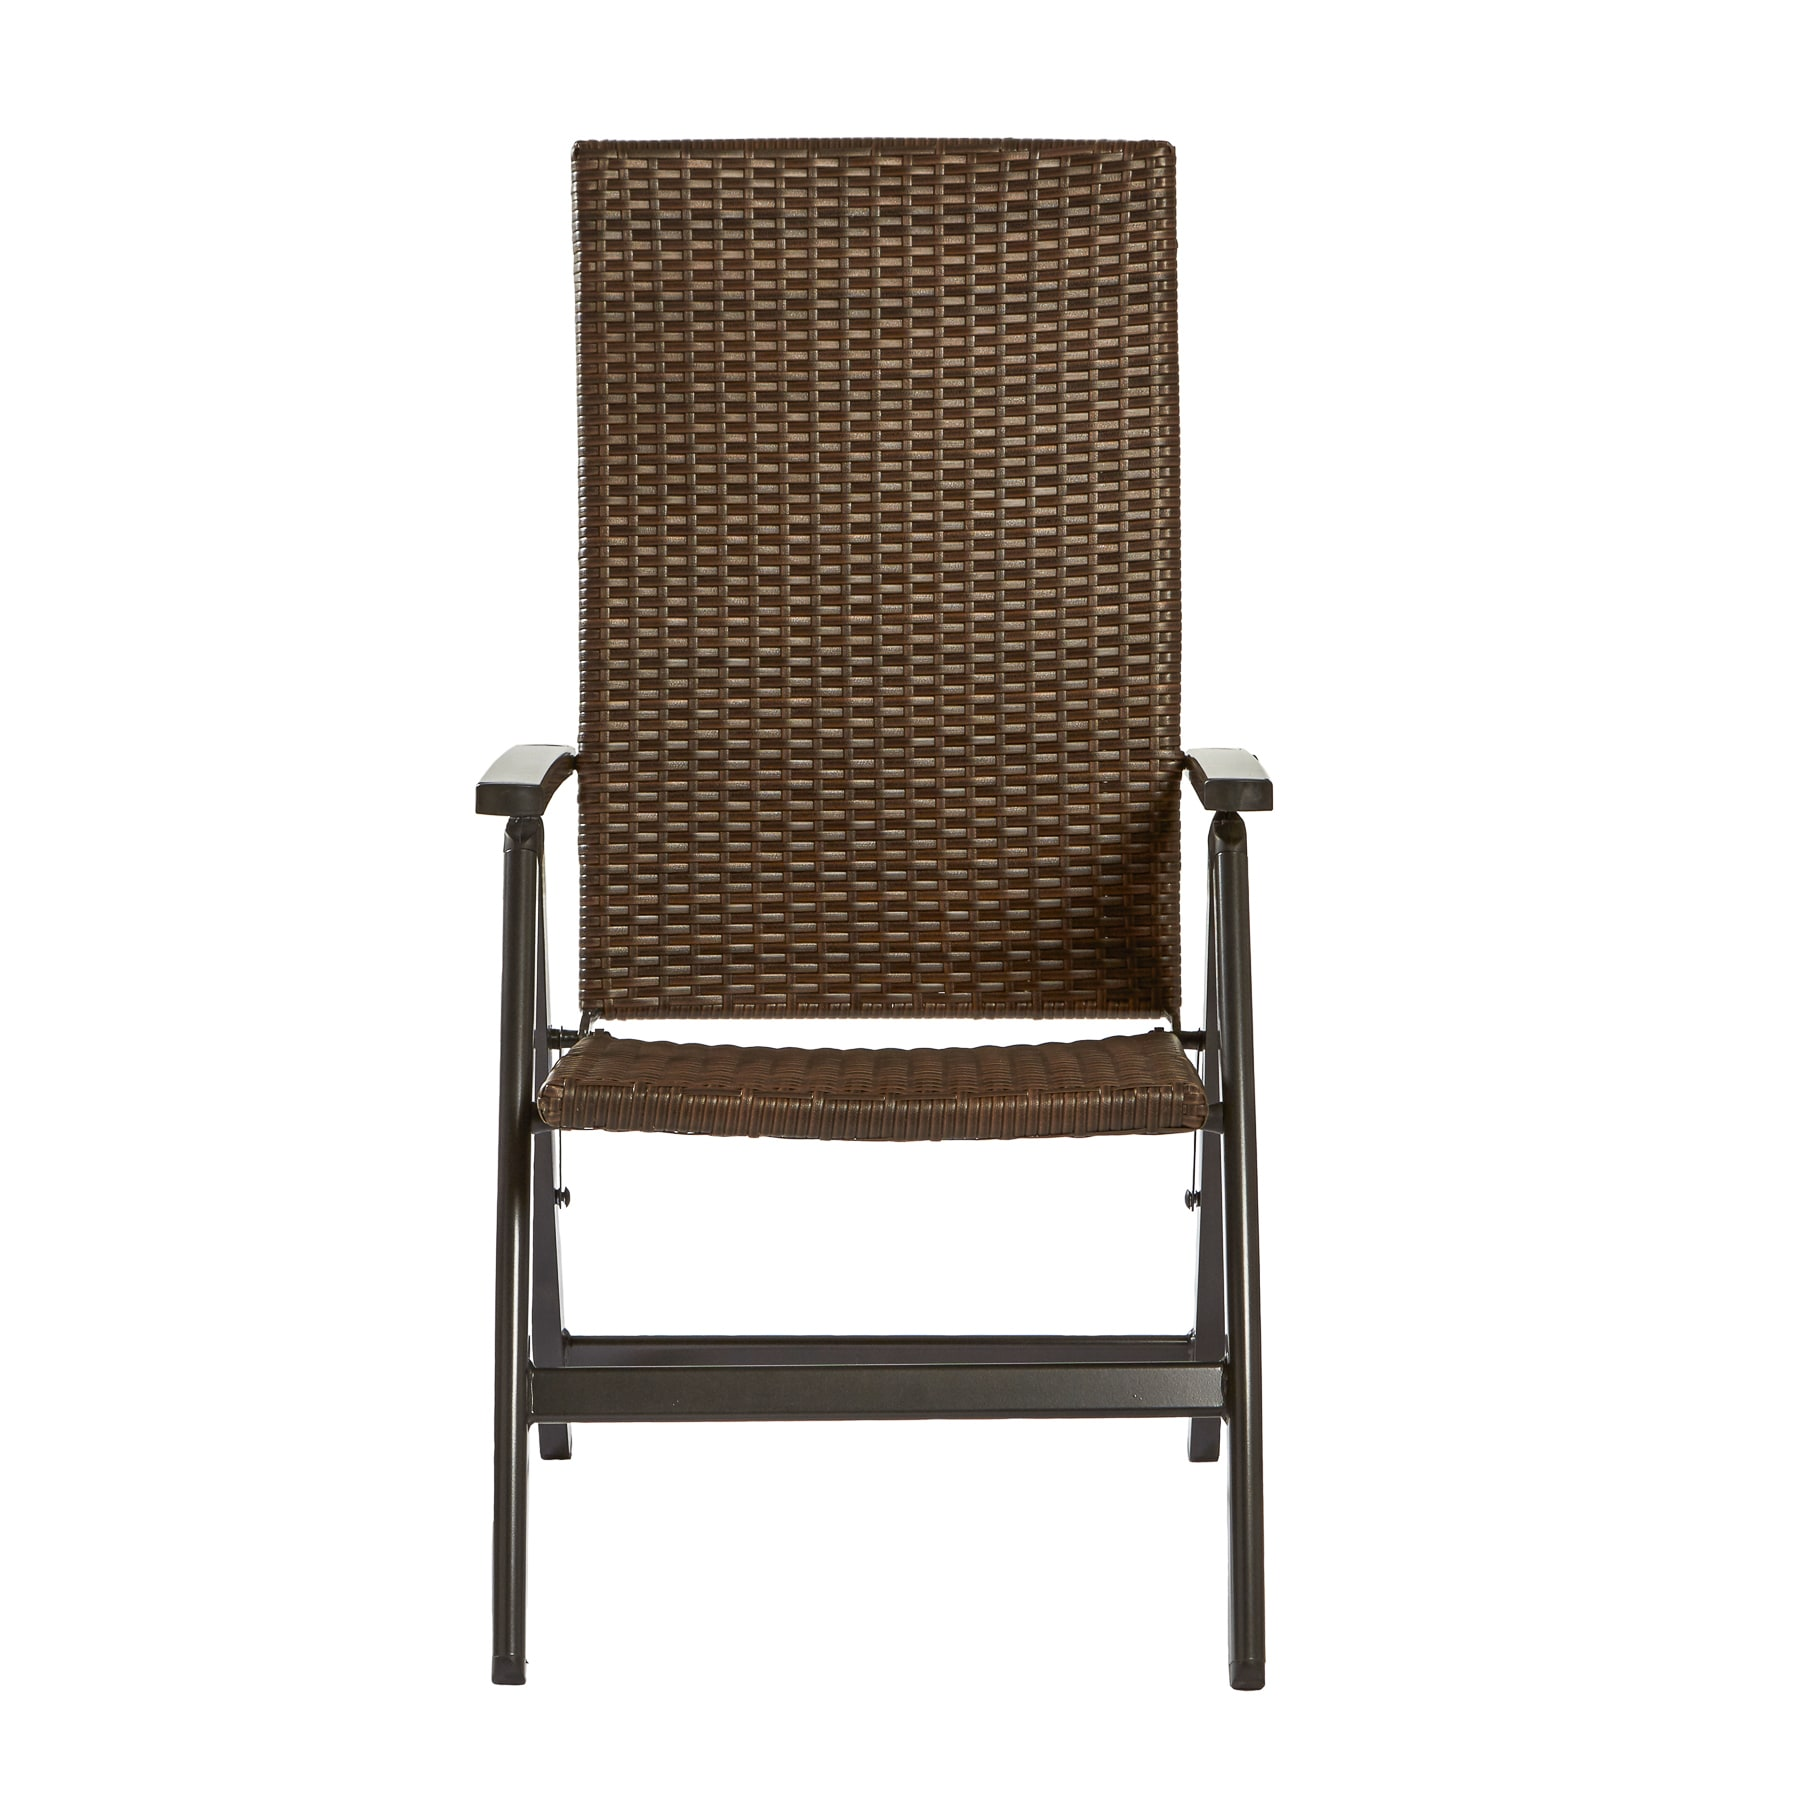 clay alder home robyville brown pe wicker hand woven outdoor